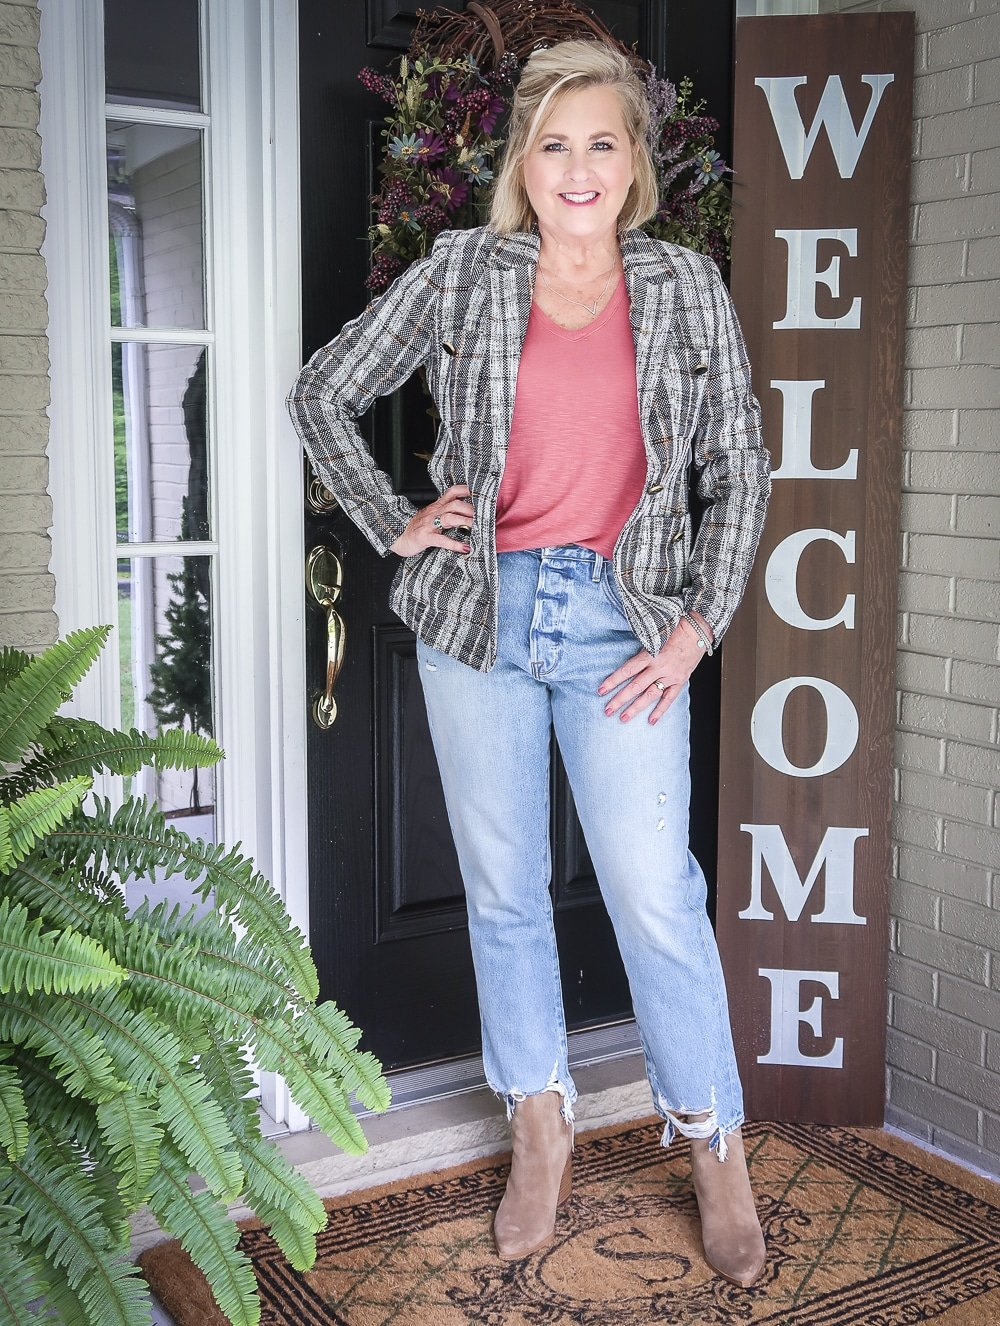 Fashion Blogger 50 Is Not Old in a tweed jacket, raw hem jeans, and ankle boots